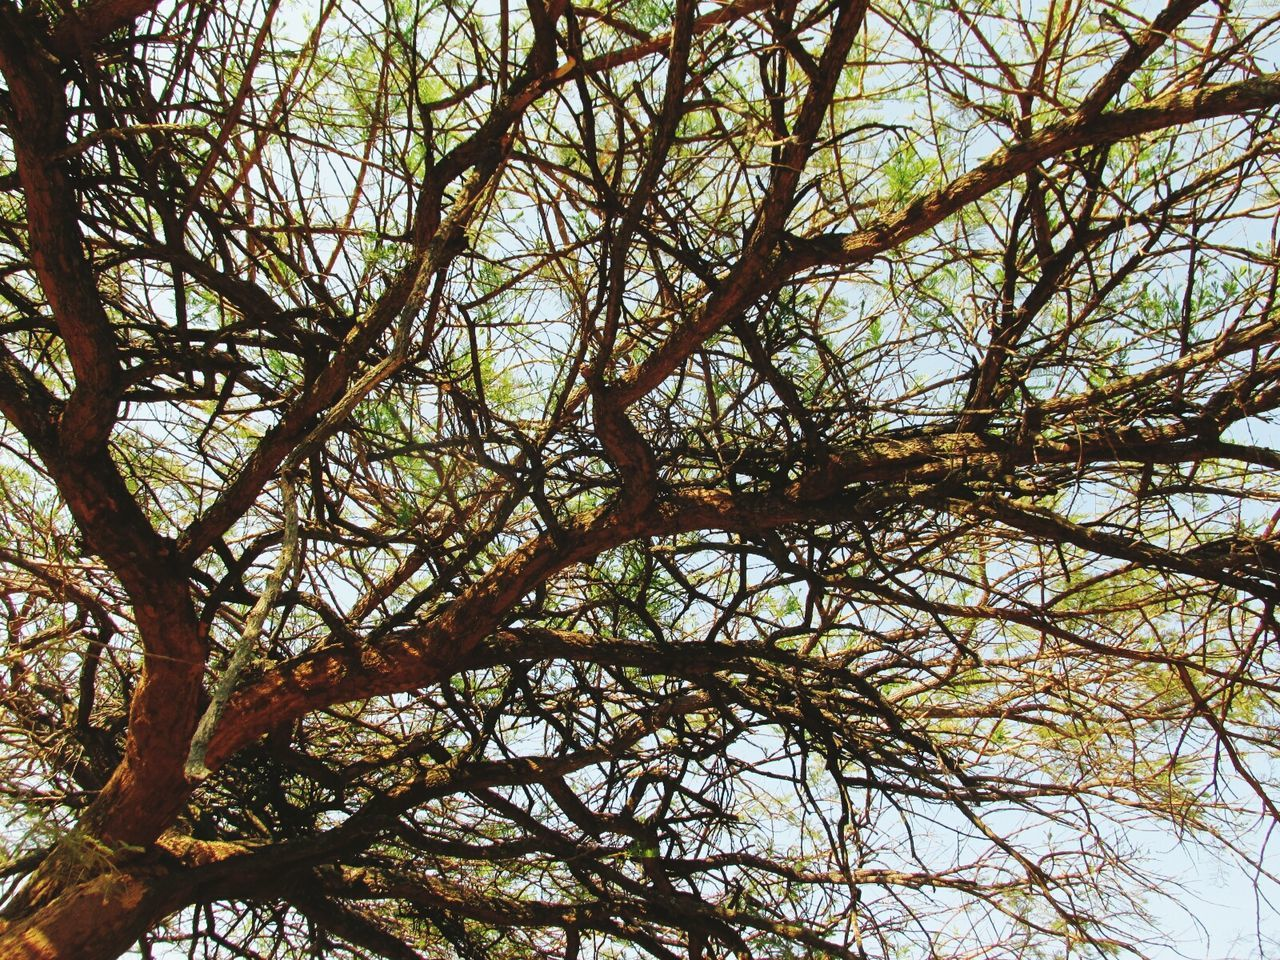 tree, nature, low angle view, branch, day, tranquility, beauty in nature, outdoors, no people, growth, tranquil scene, full frame, backgrounds, sky, forest, close-up